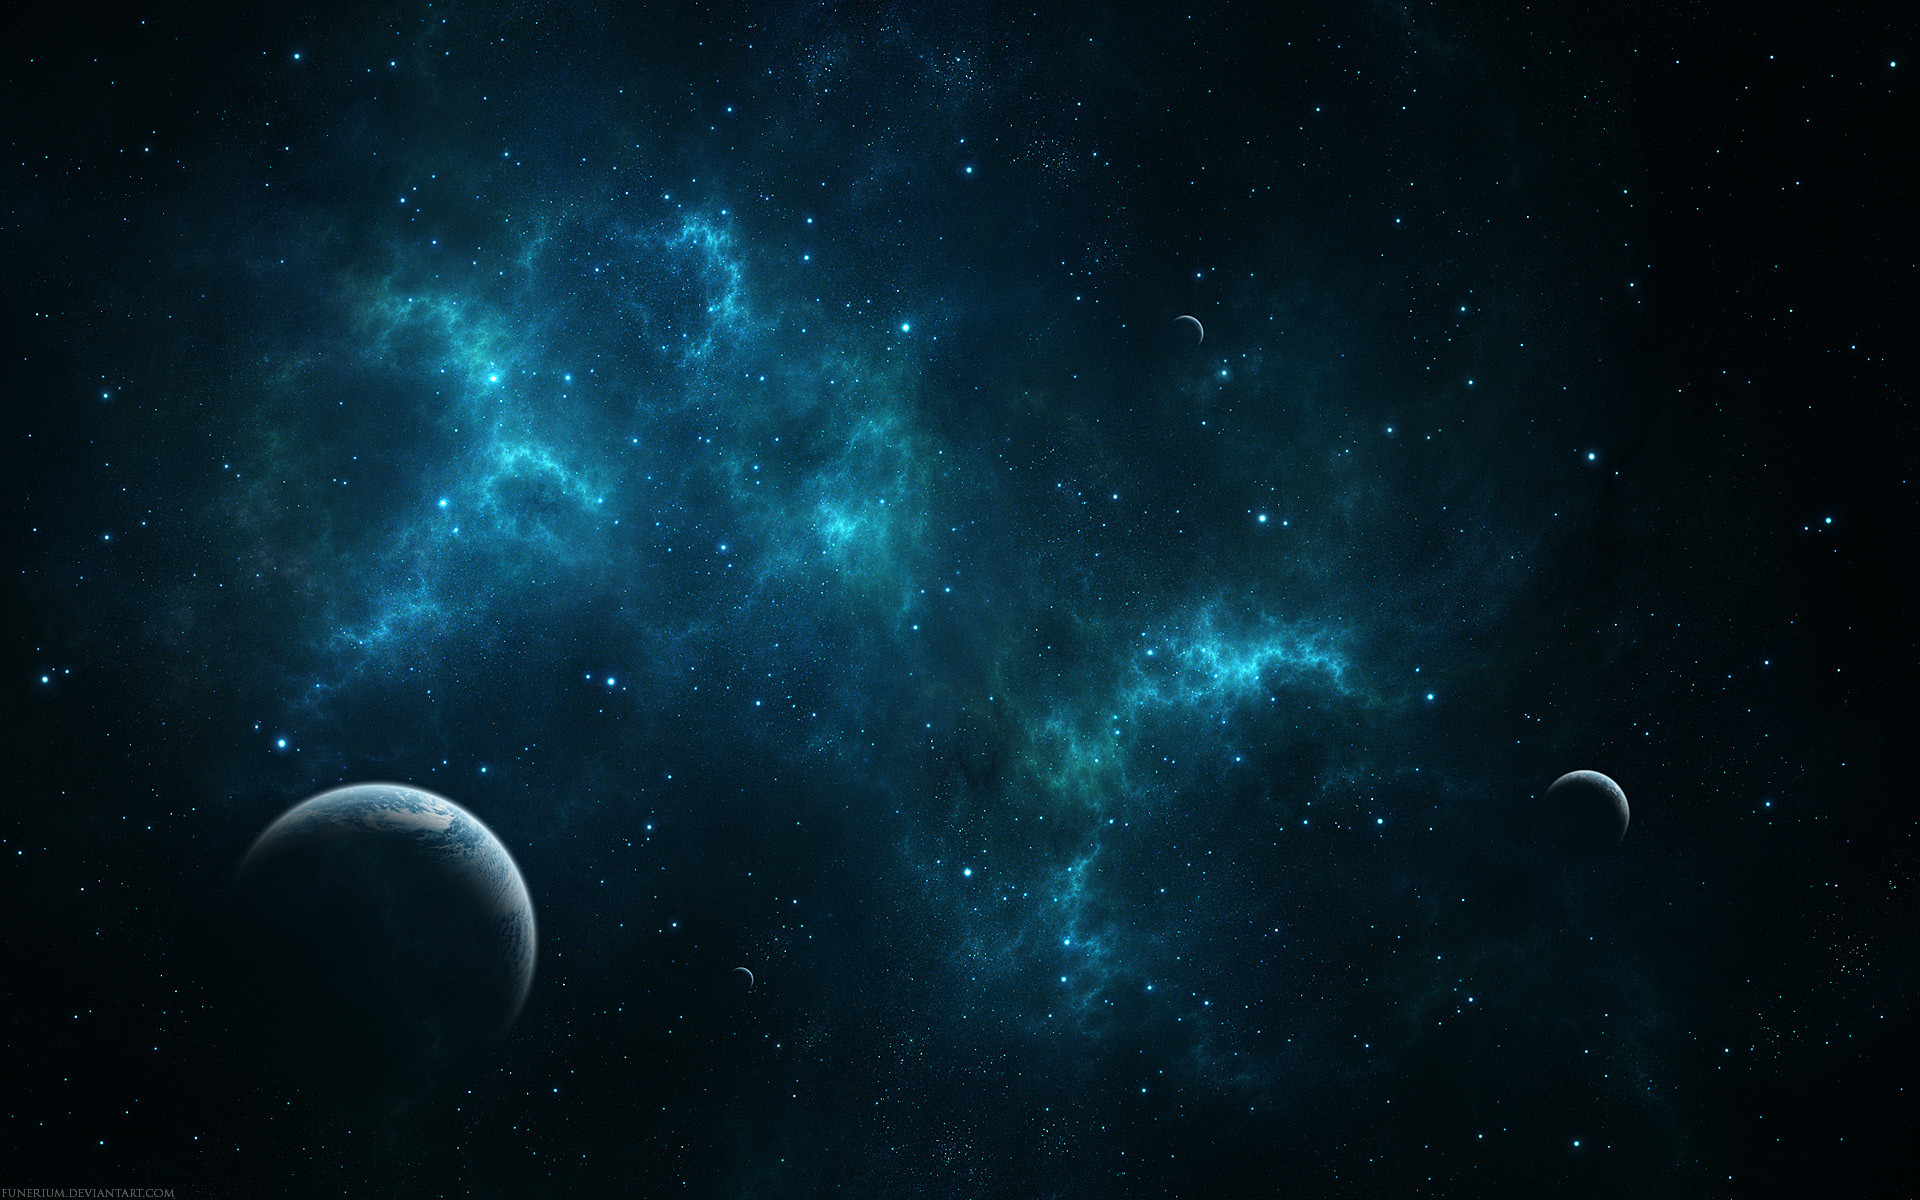 Download Free #Space #Wallpapers, Pictures and Desktop Backgrounds. Amazing  collection of Widescreen